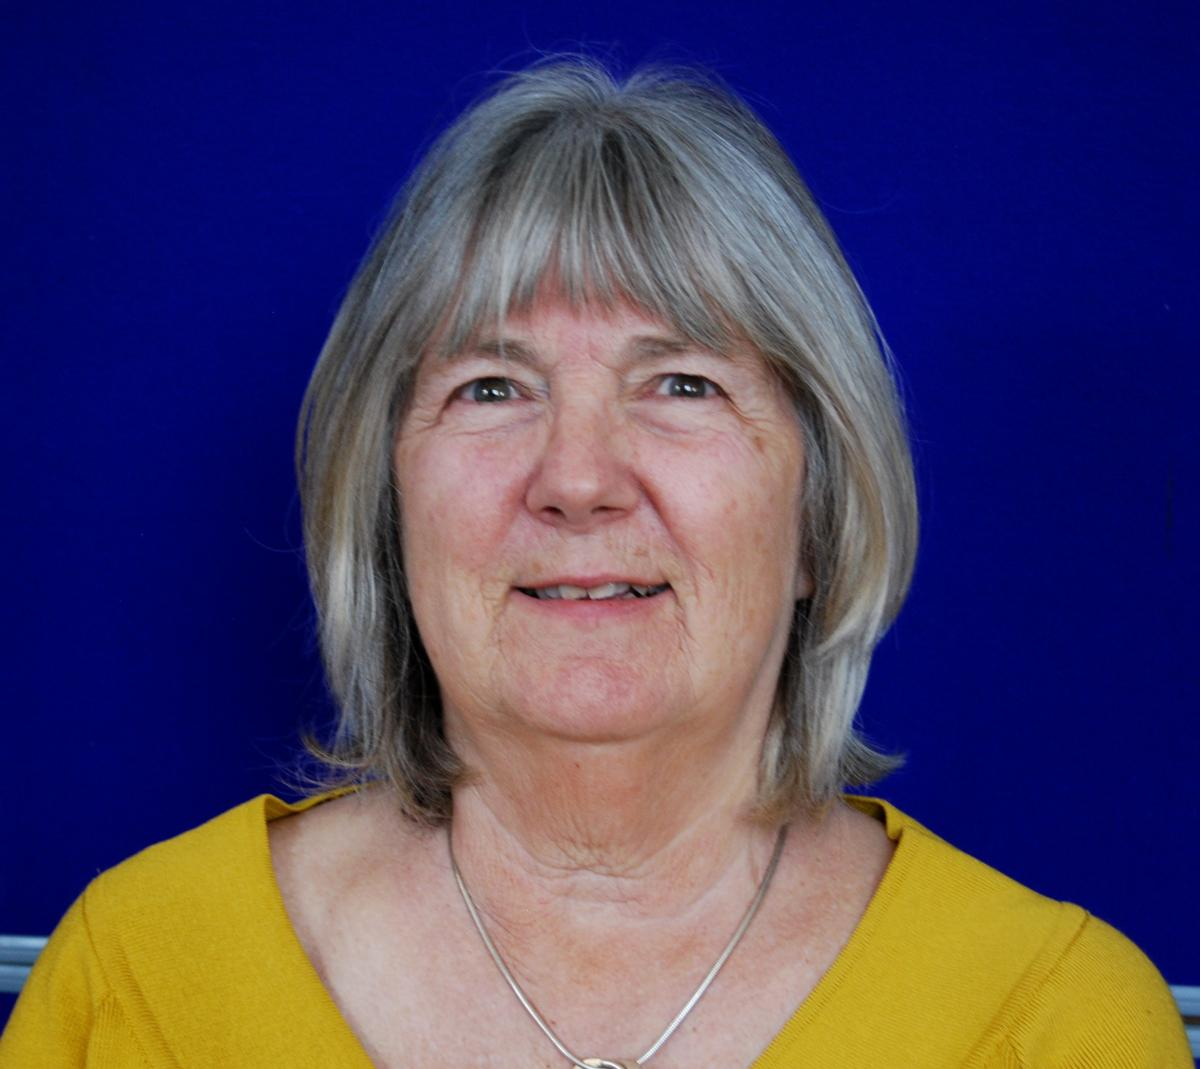 Image of Annnette Bridgeford Governor for Wellingborough